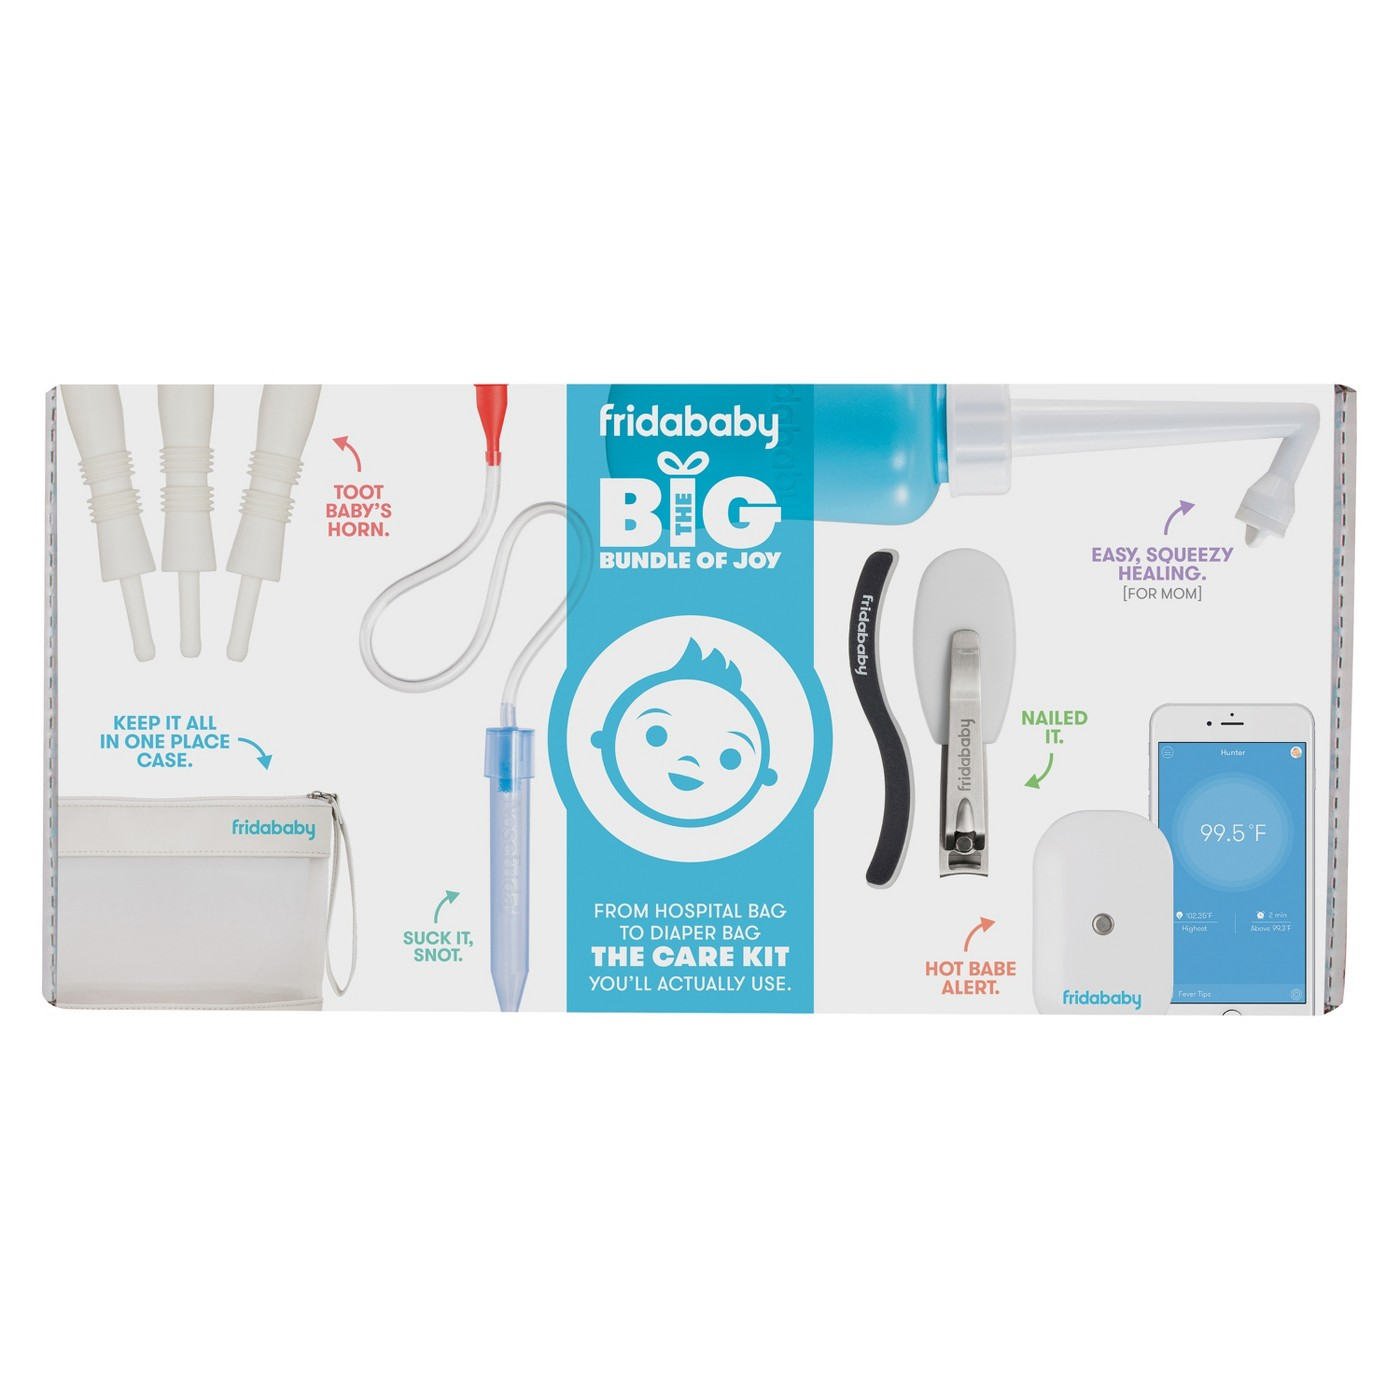 16 Essential Products For Mom To Get Through Those First Few Years GUEST b497a2c6 9f5b 4f7a 87bf 58ac4f34782a wid 1400